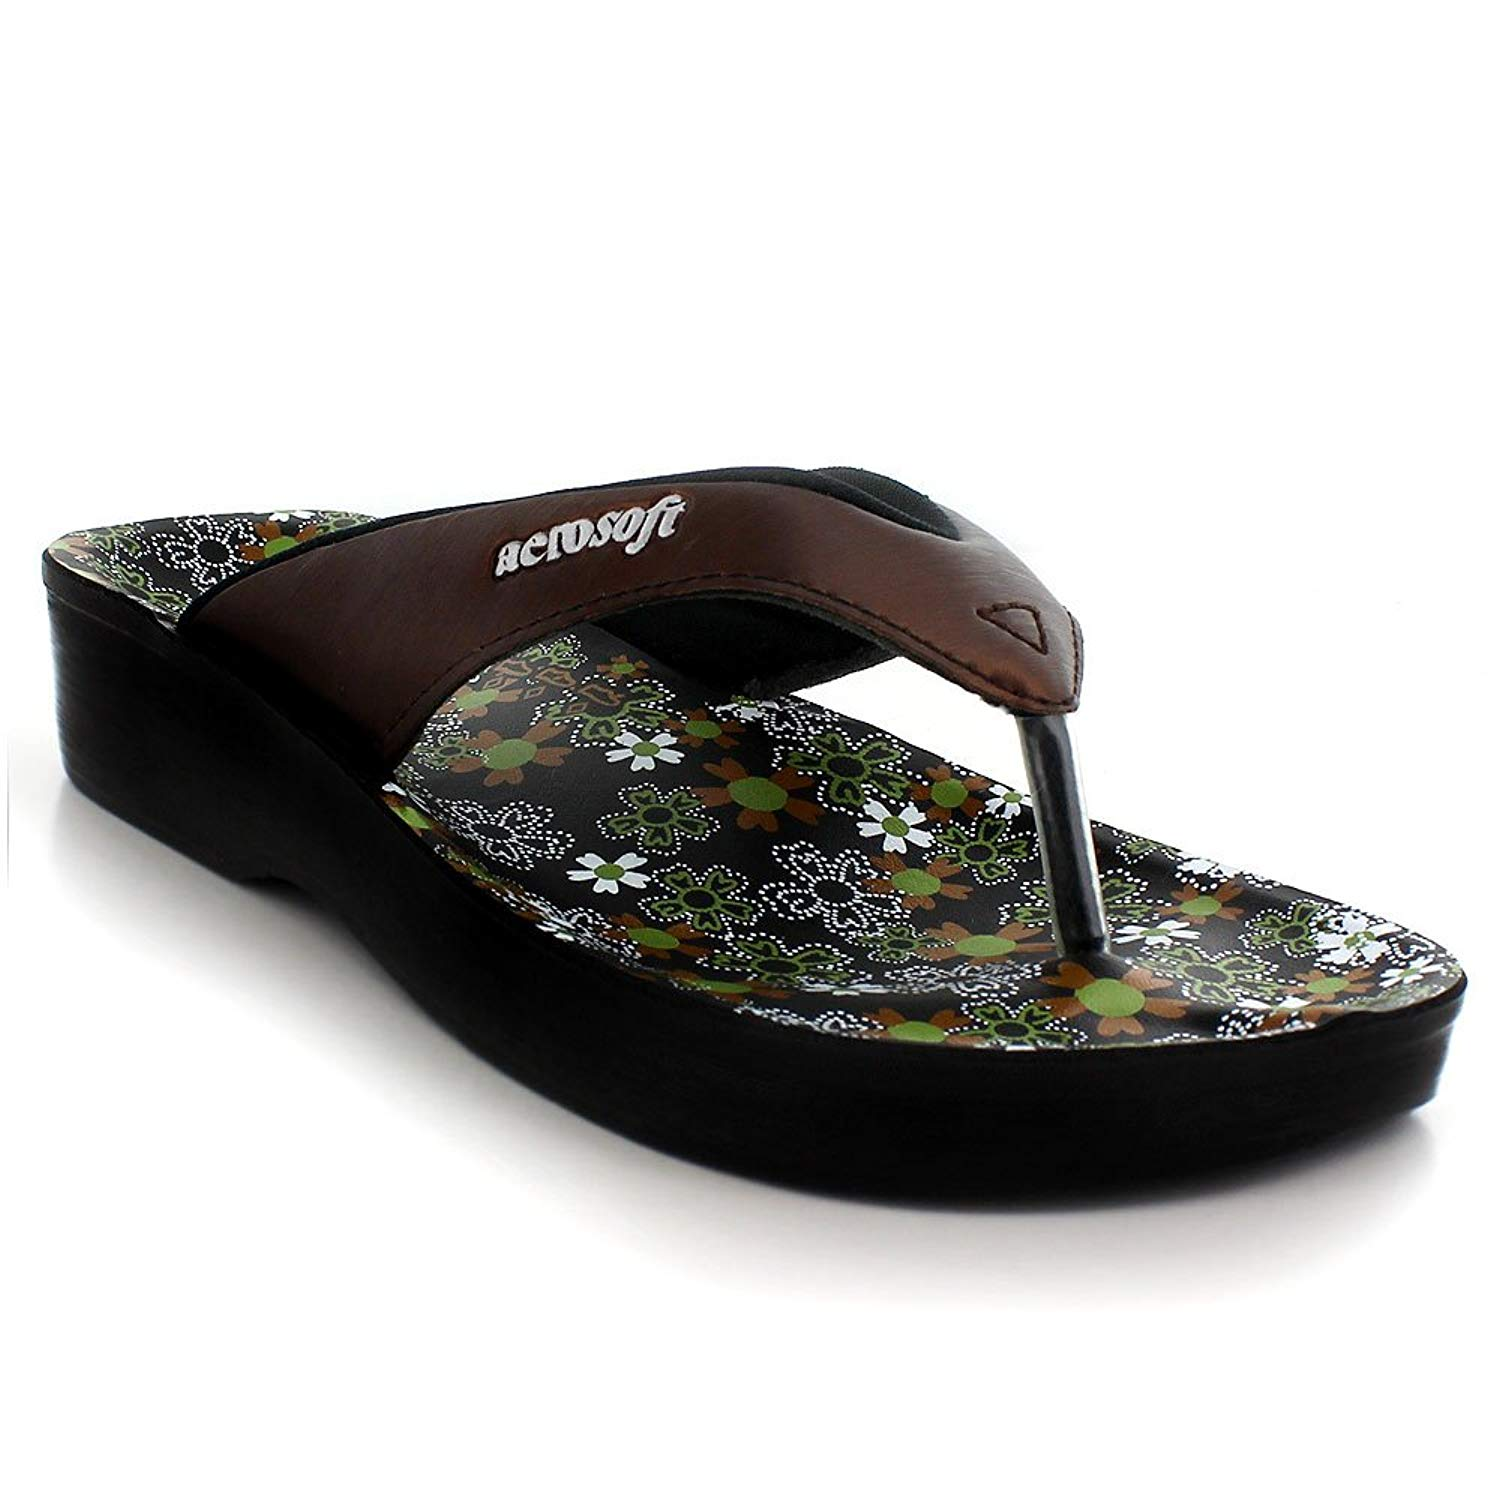 528c30f96 Get Quotations · Aerosoft Original Womens Thong Style Sandals with Printed  Footbed